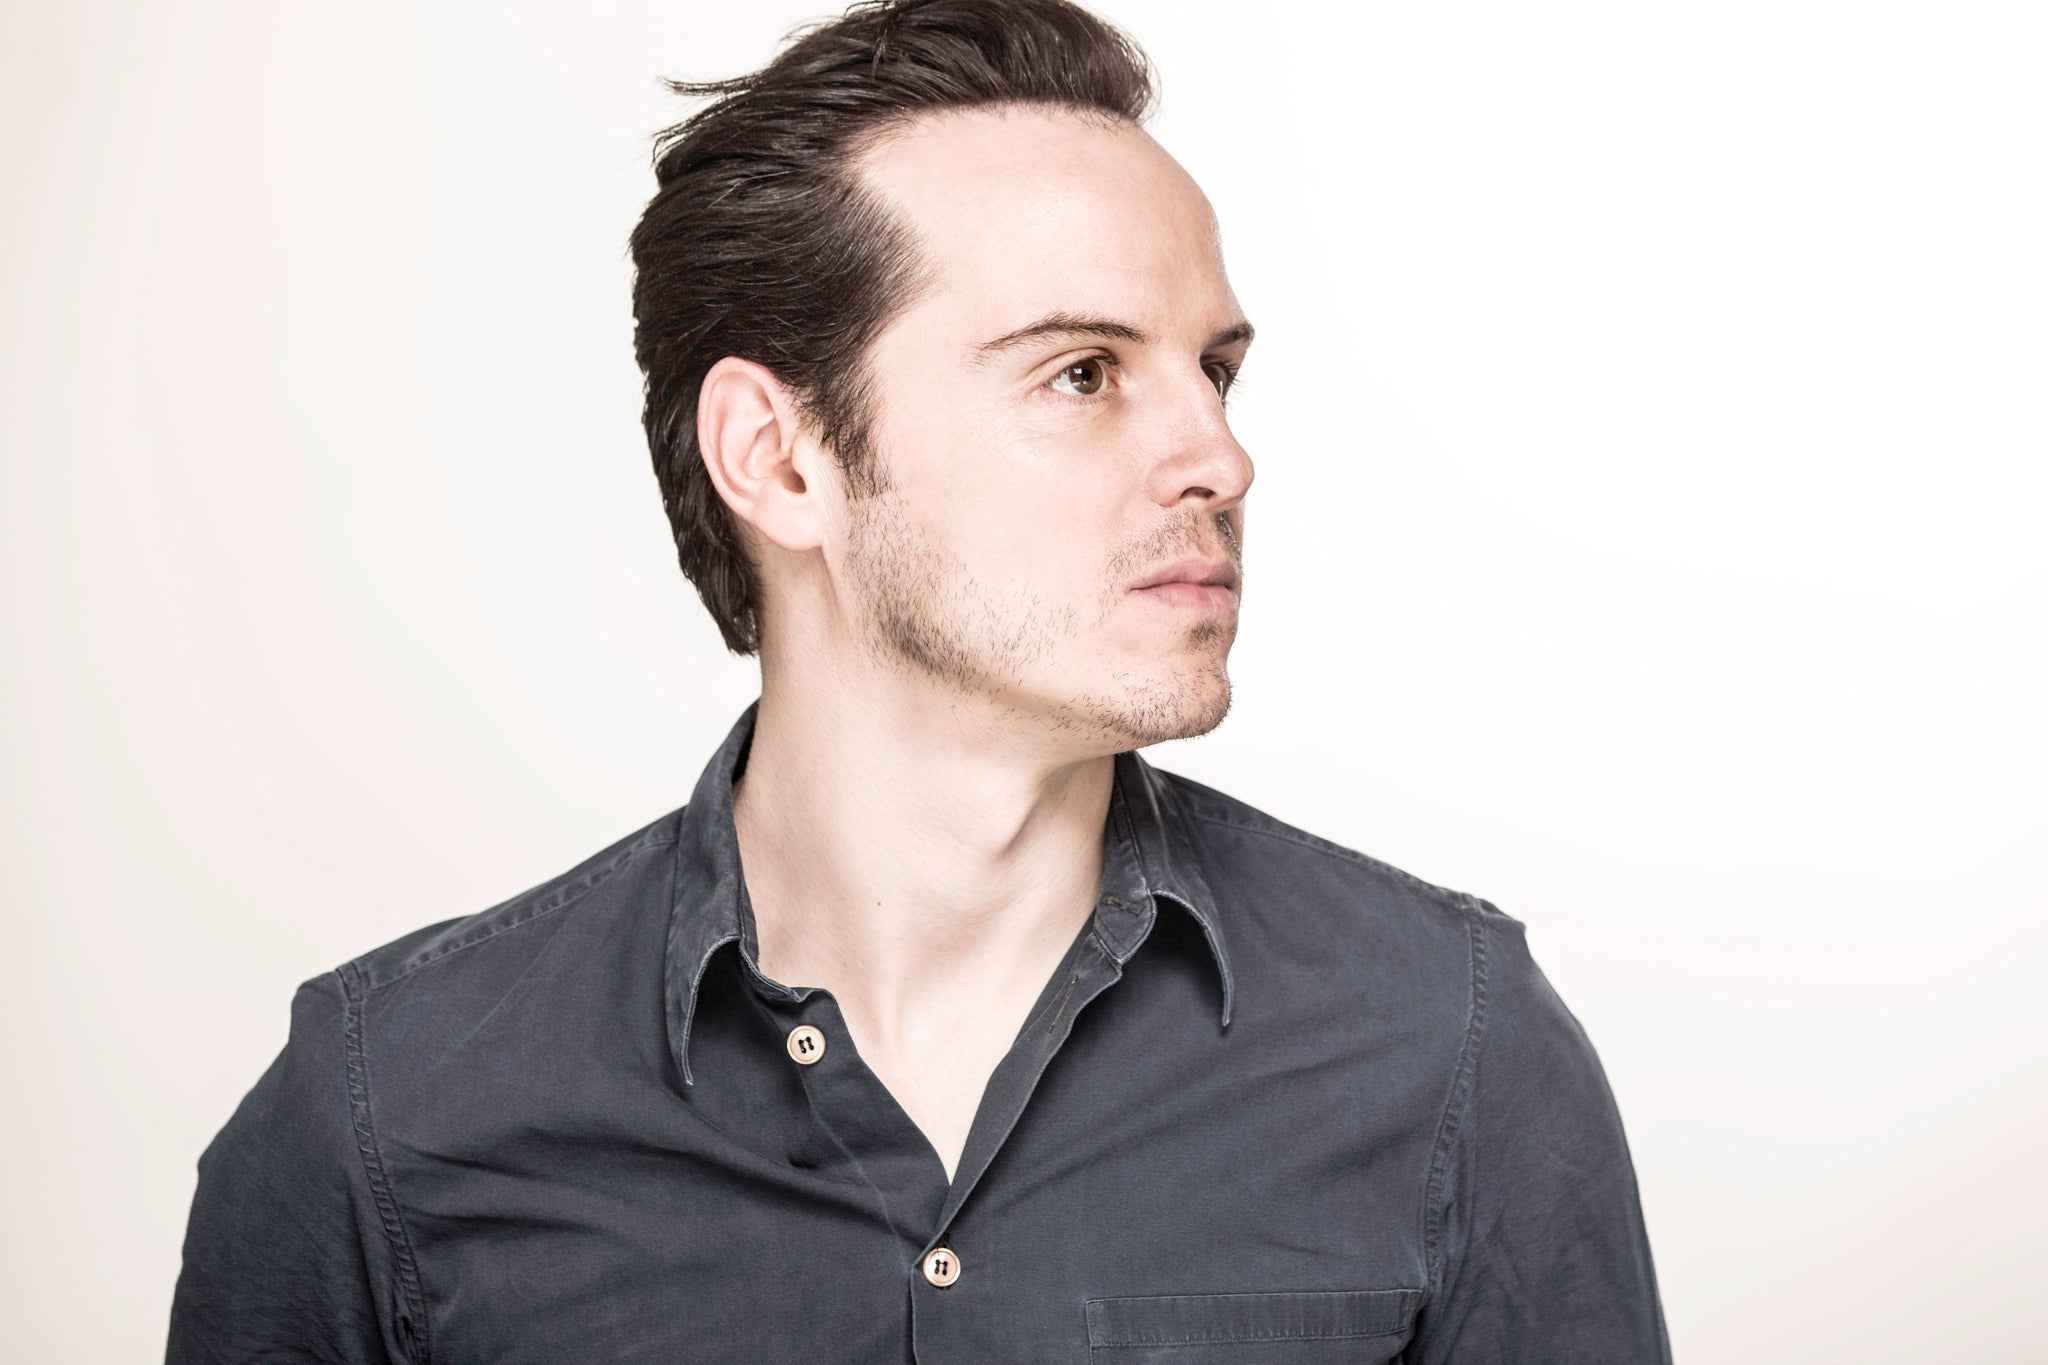 andrew scott tumblr